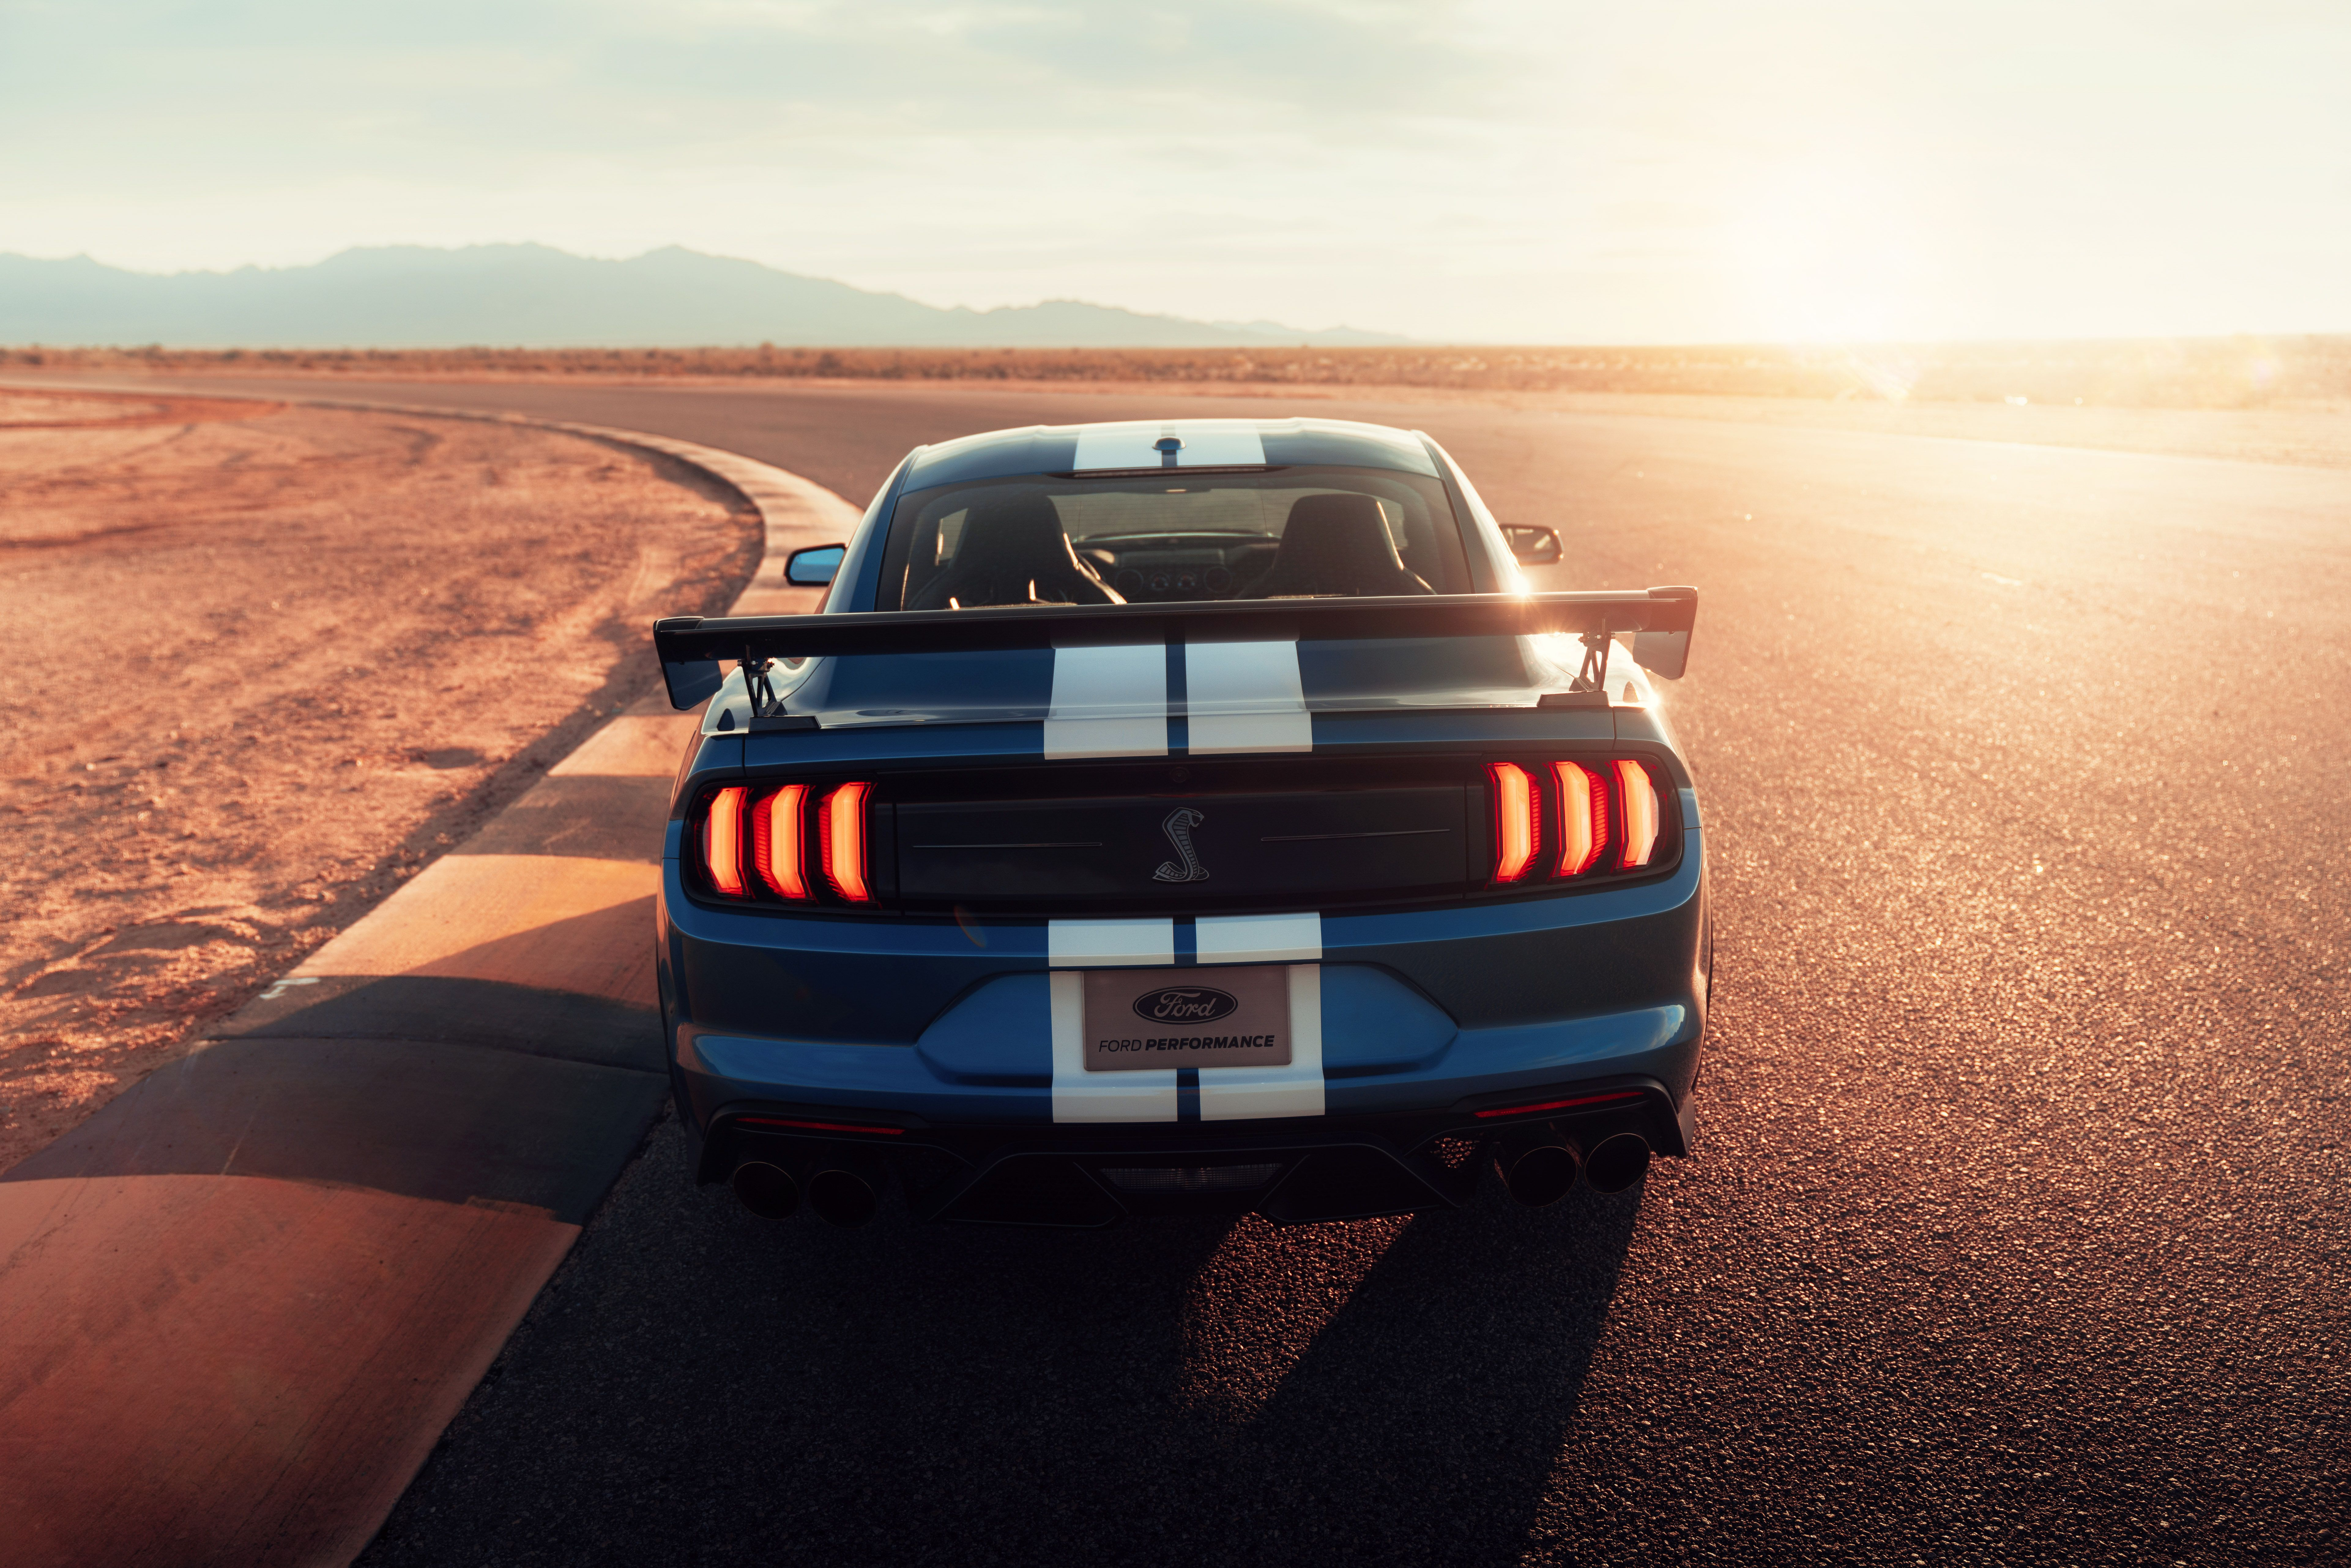 Fords most powerful mustang shelby gt500 to date top speed governed